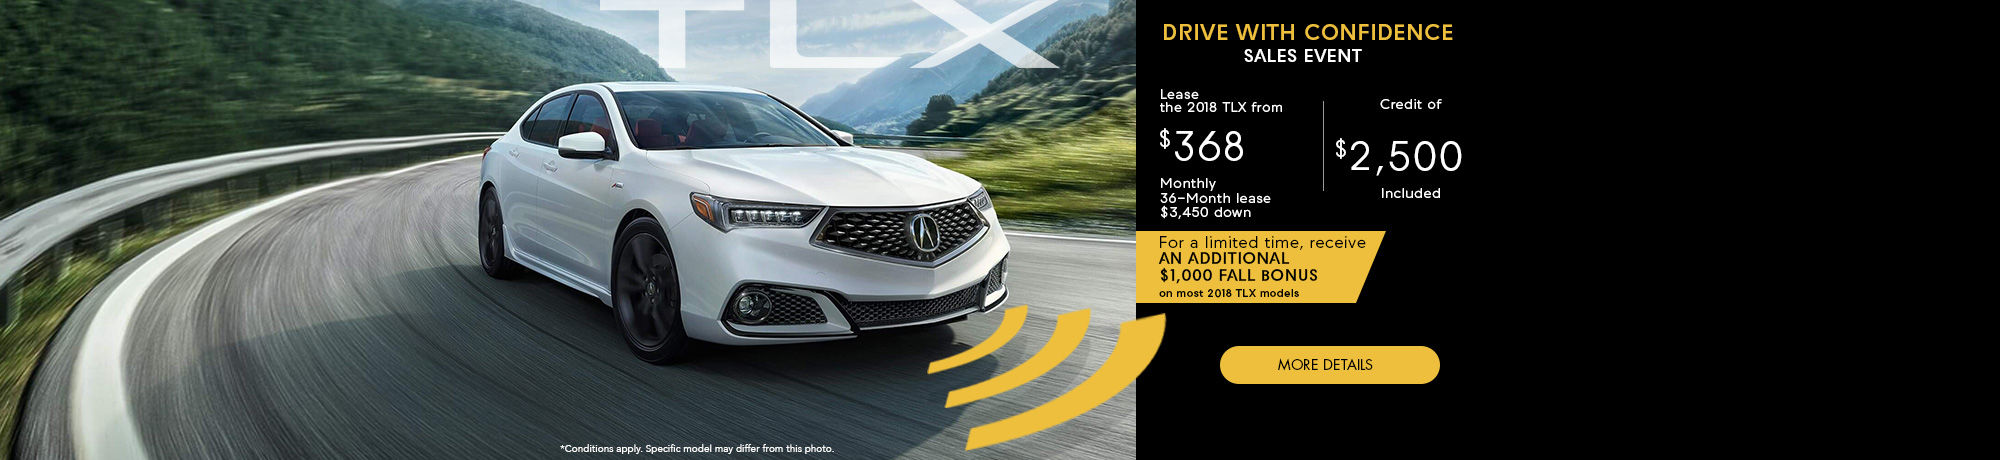 Drive With Confidence Sales Event - TLX - Octobre